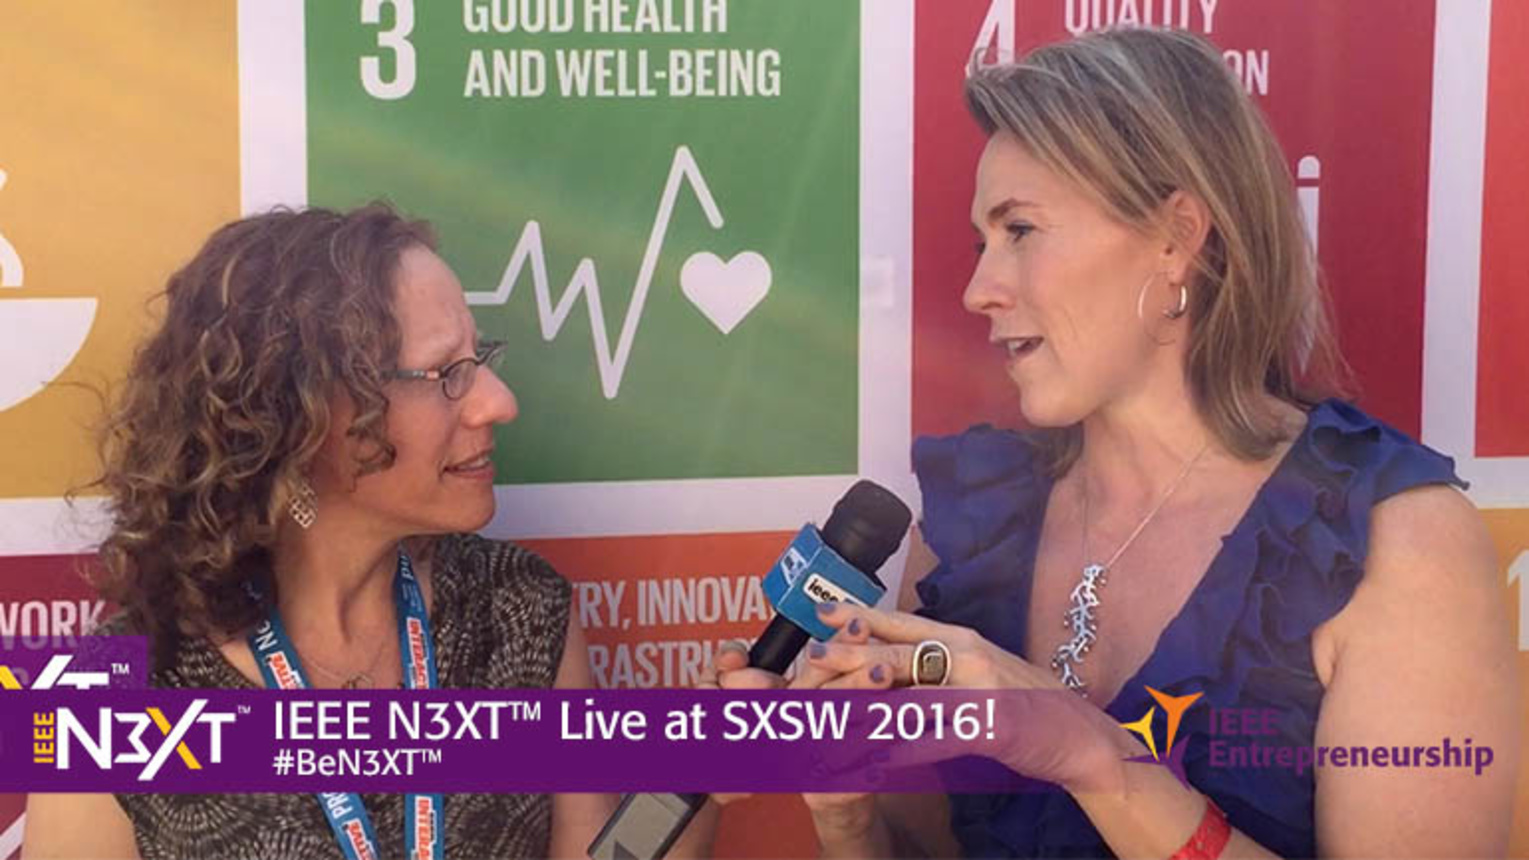 N3XT @ SXSW 2016: Kerry Rupp, True Wealth Venture Capital